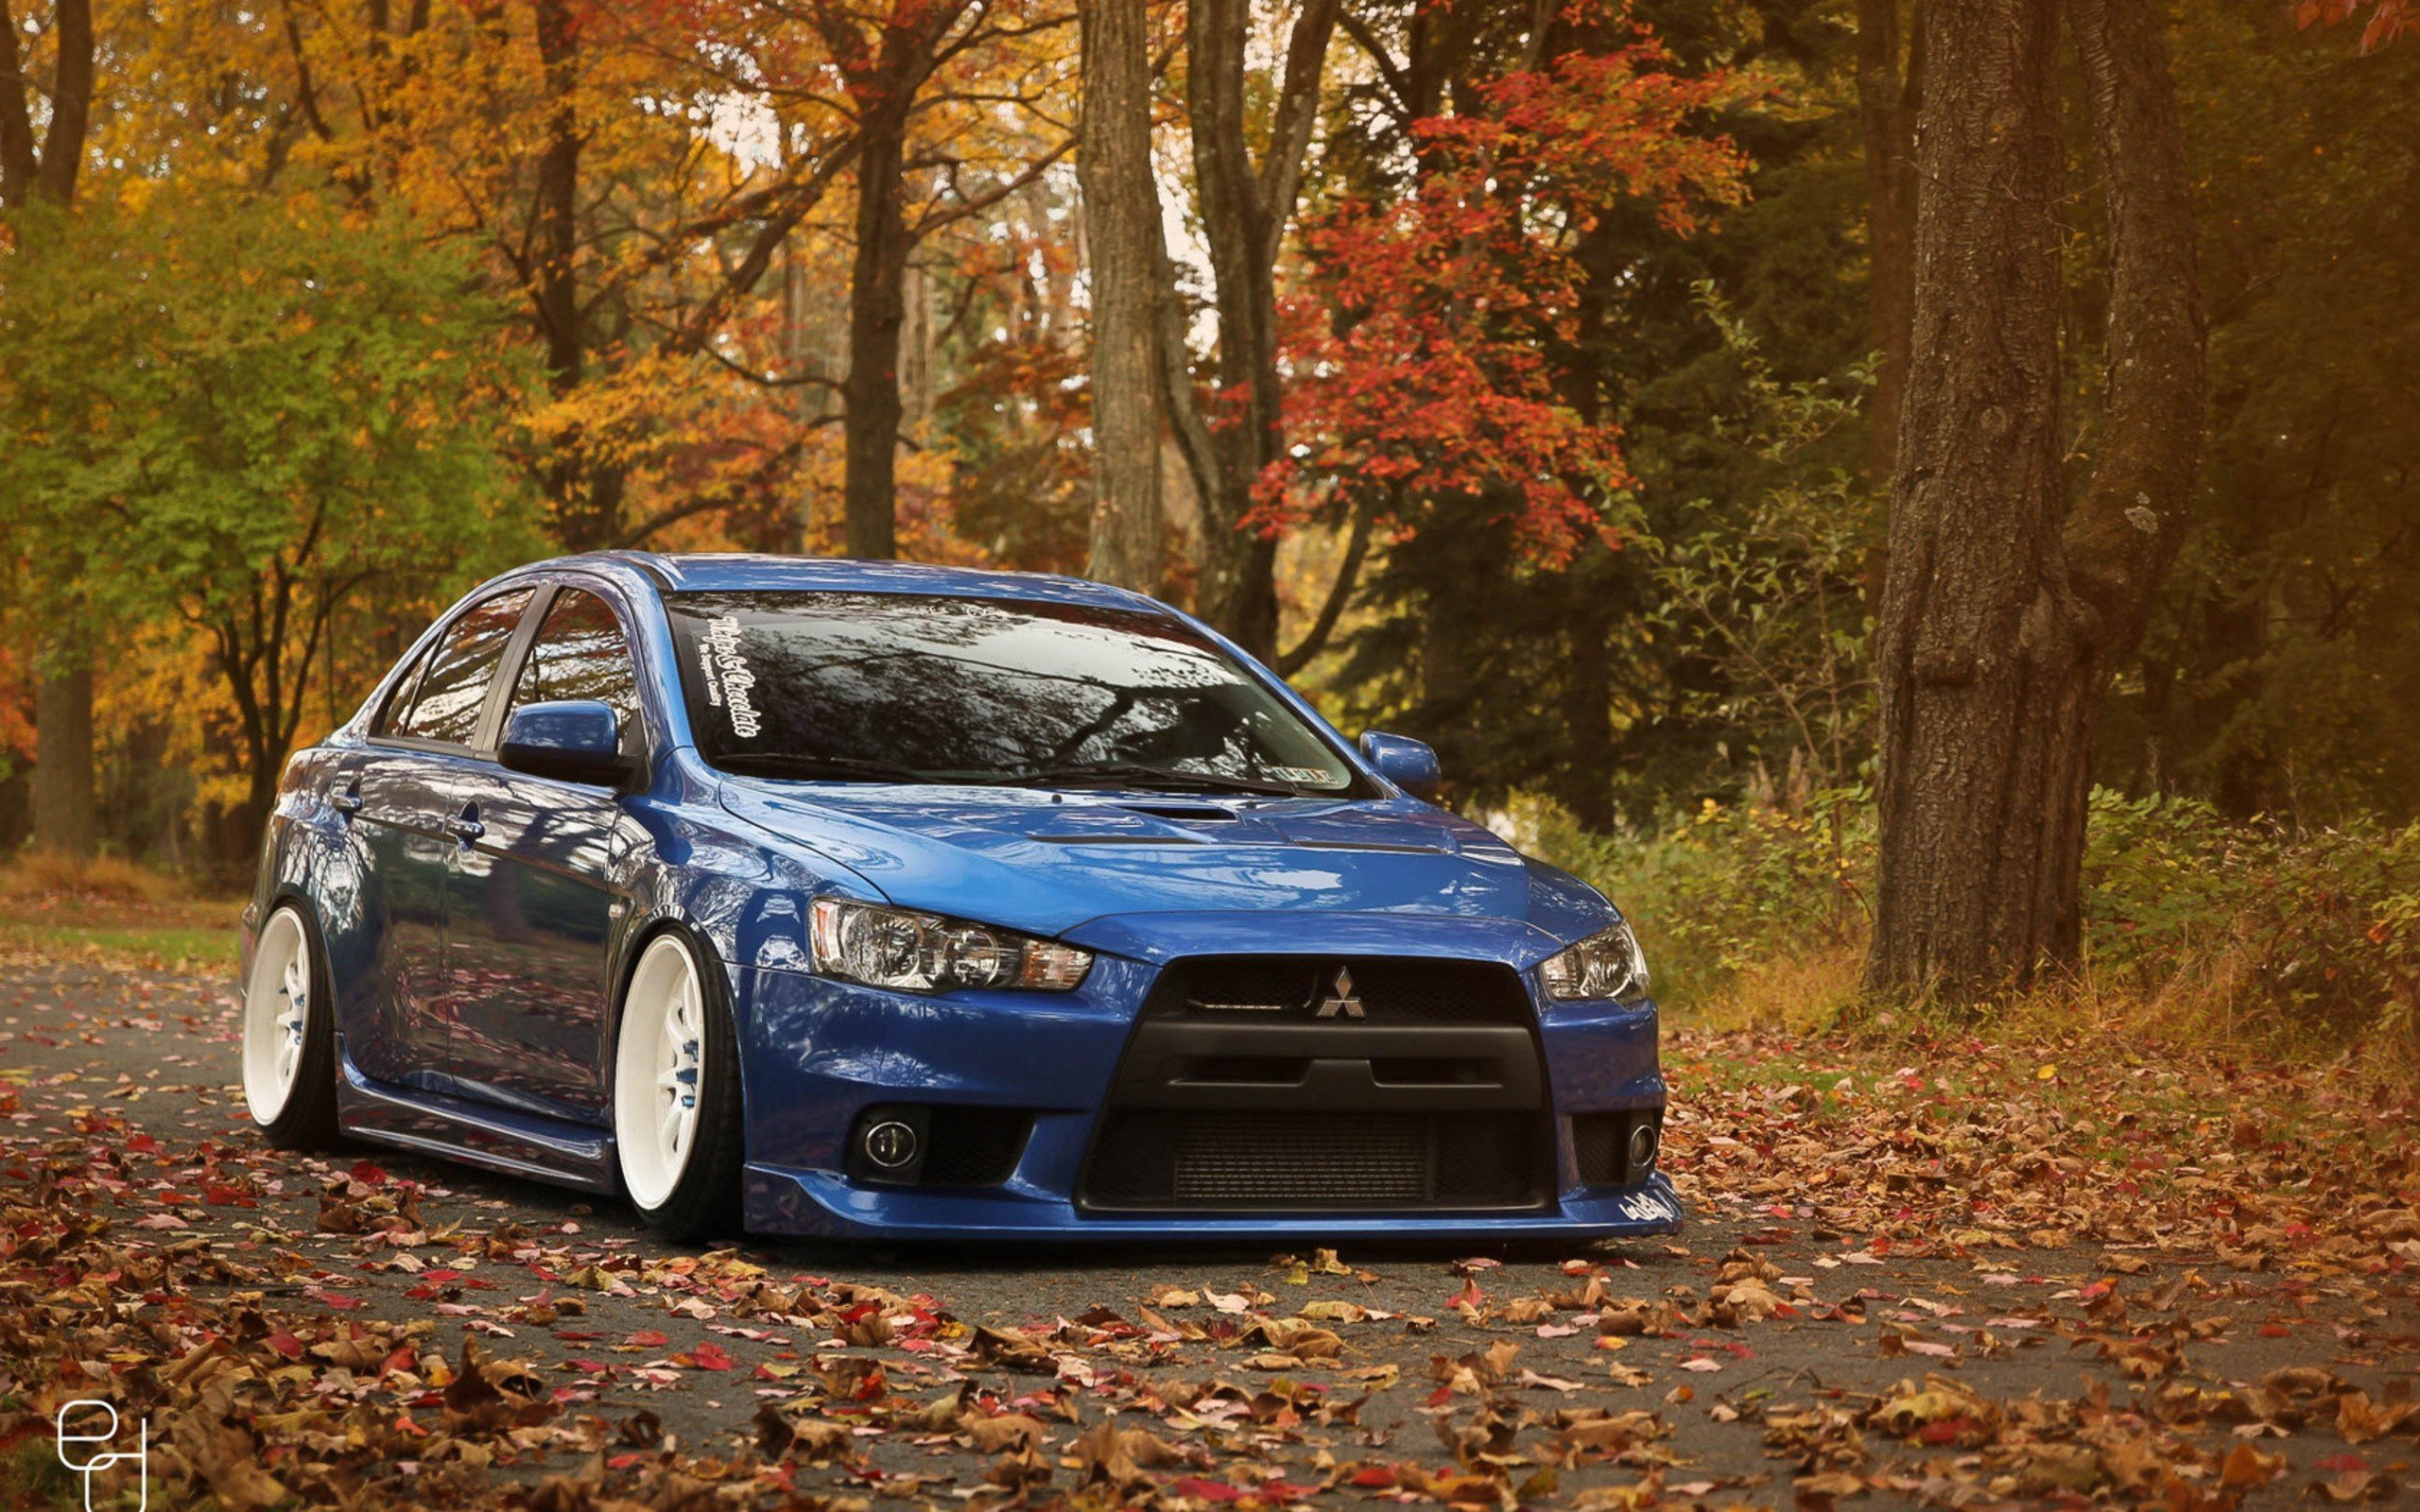 Autumn Old Car Wallpaper Cars Mitsubishi Lancer Evolution Wallpaper 2560x1600